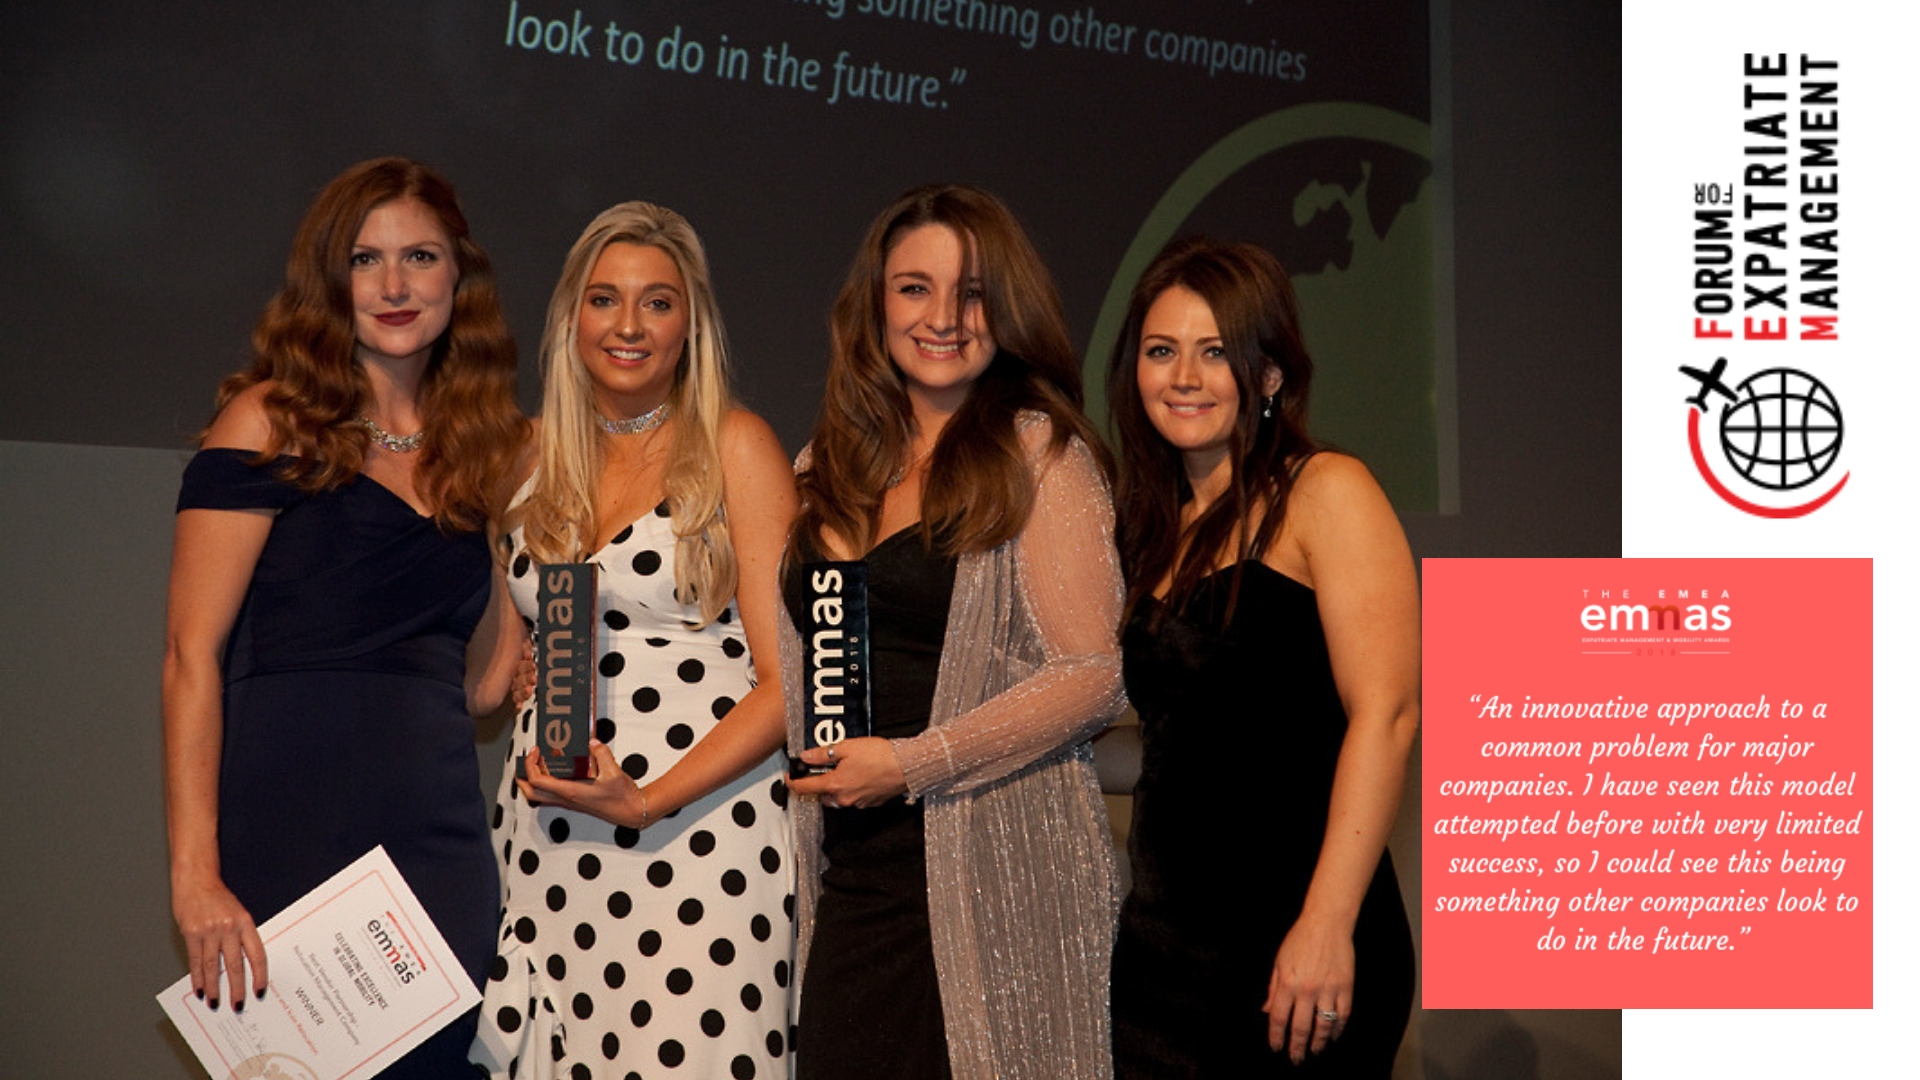 Tesco & Icon Relocation Winners - Our Corporate Housing solution for Tesco received the highest industry award by winning the Vendor Partnership EMMA. Ask how we could offer you an award winning solution.